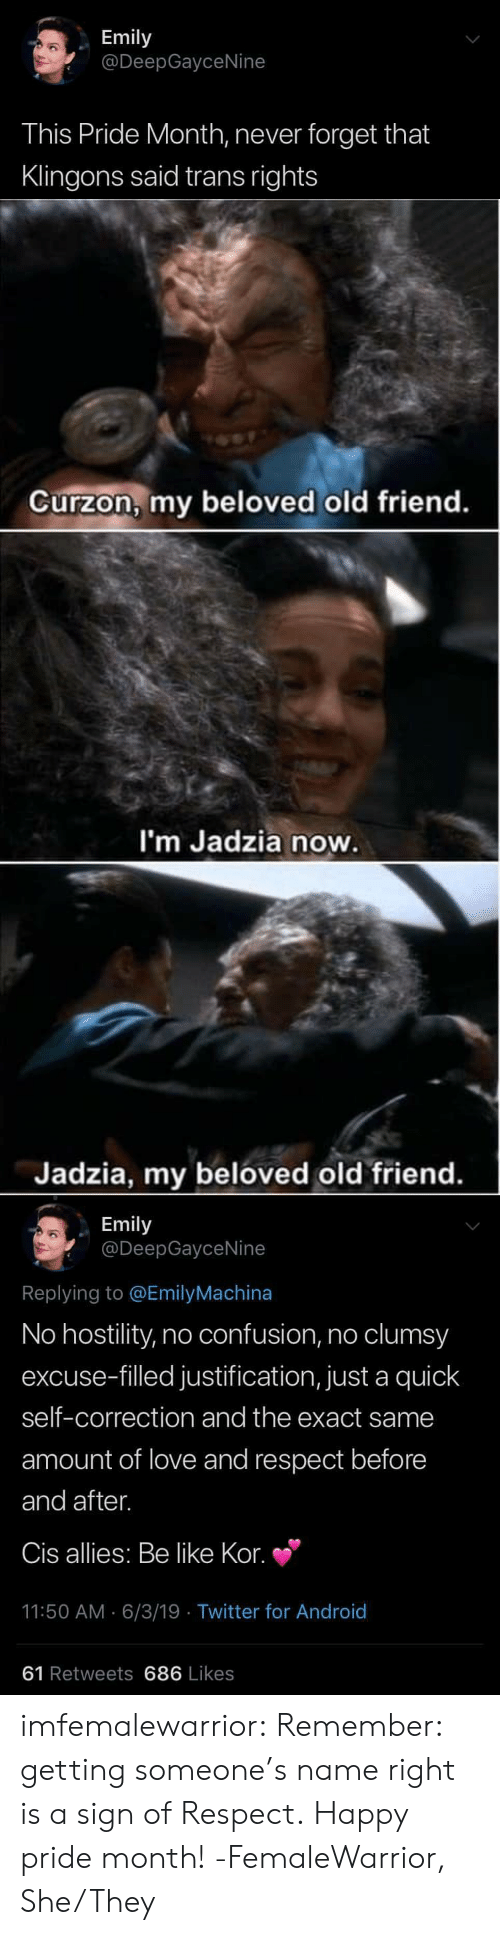 before and after: Emily  @DeepGayceNine  This Pride Month, never forget that  Klingons said trans rights   Curzon, my beloved old friend.  I'm Jadzia now.  Jadzia, my beloved old friend.   Emily  @DeepGayceNine  Replying to @EmilyMachina  No hostility, no confusion, no clumsy  excuse-filled justification, just a quick  self-correction and the exact same  amount of love and respect before  and after.  Cis allies: Be like Kor.  11:50 AM 6/3/19 Twitter for And roid  61 Retweets 686 Likes imfemalewarrior:  Remember: getting someone's name right is a sign of Respect. Happy pride month! -FemaleWarrior, She/They